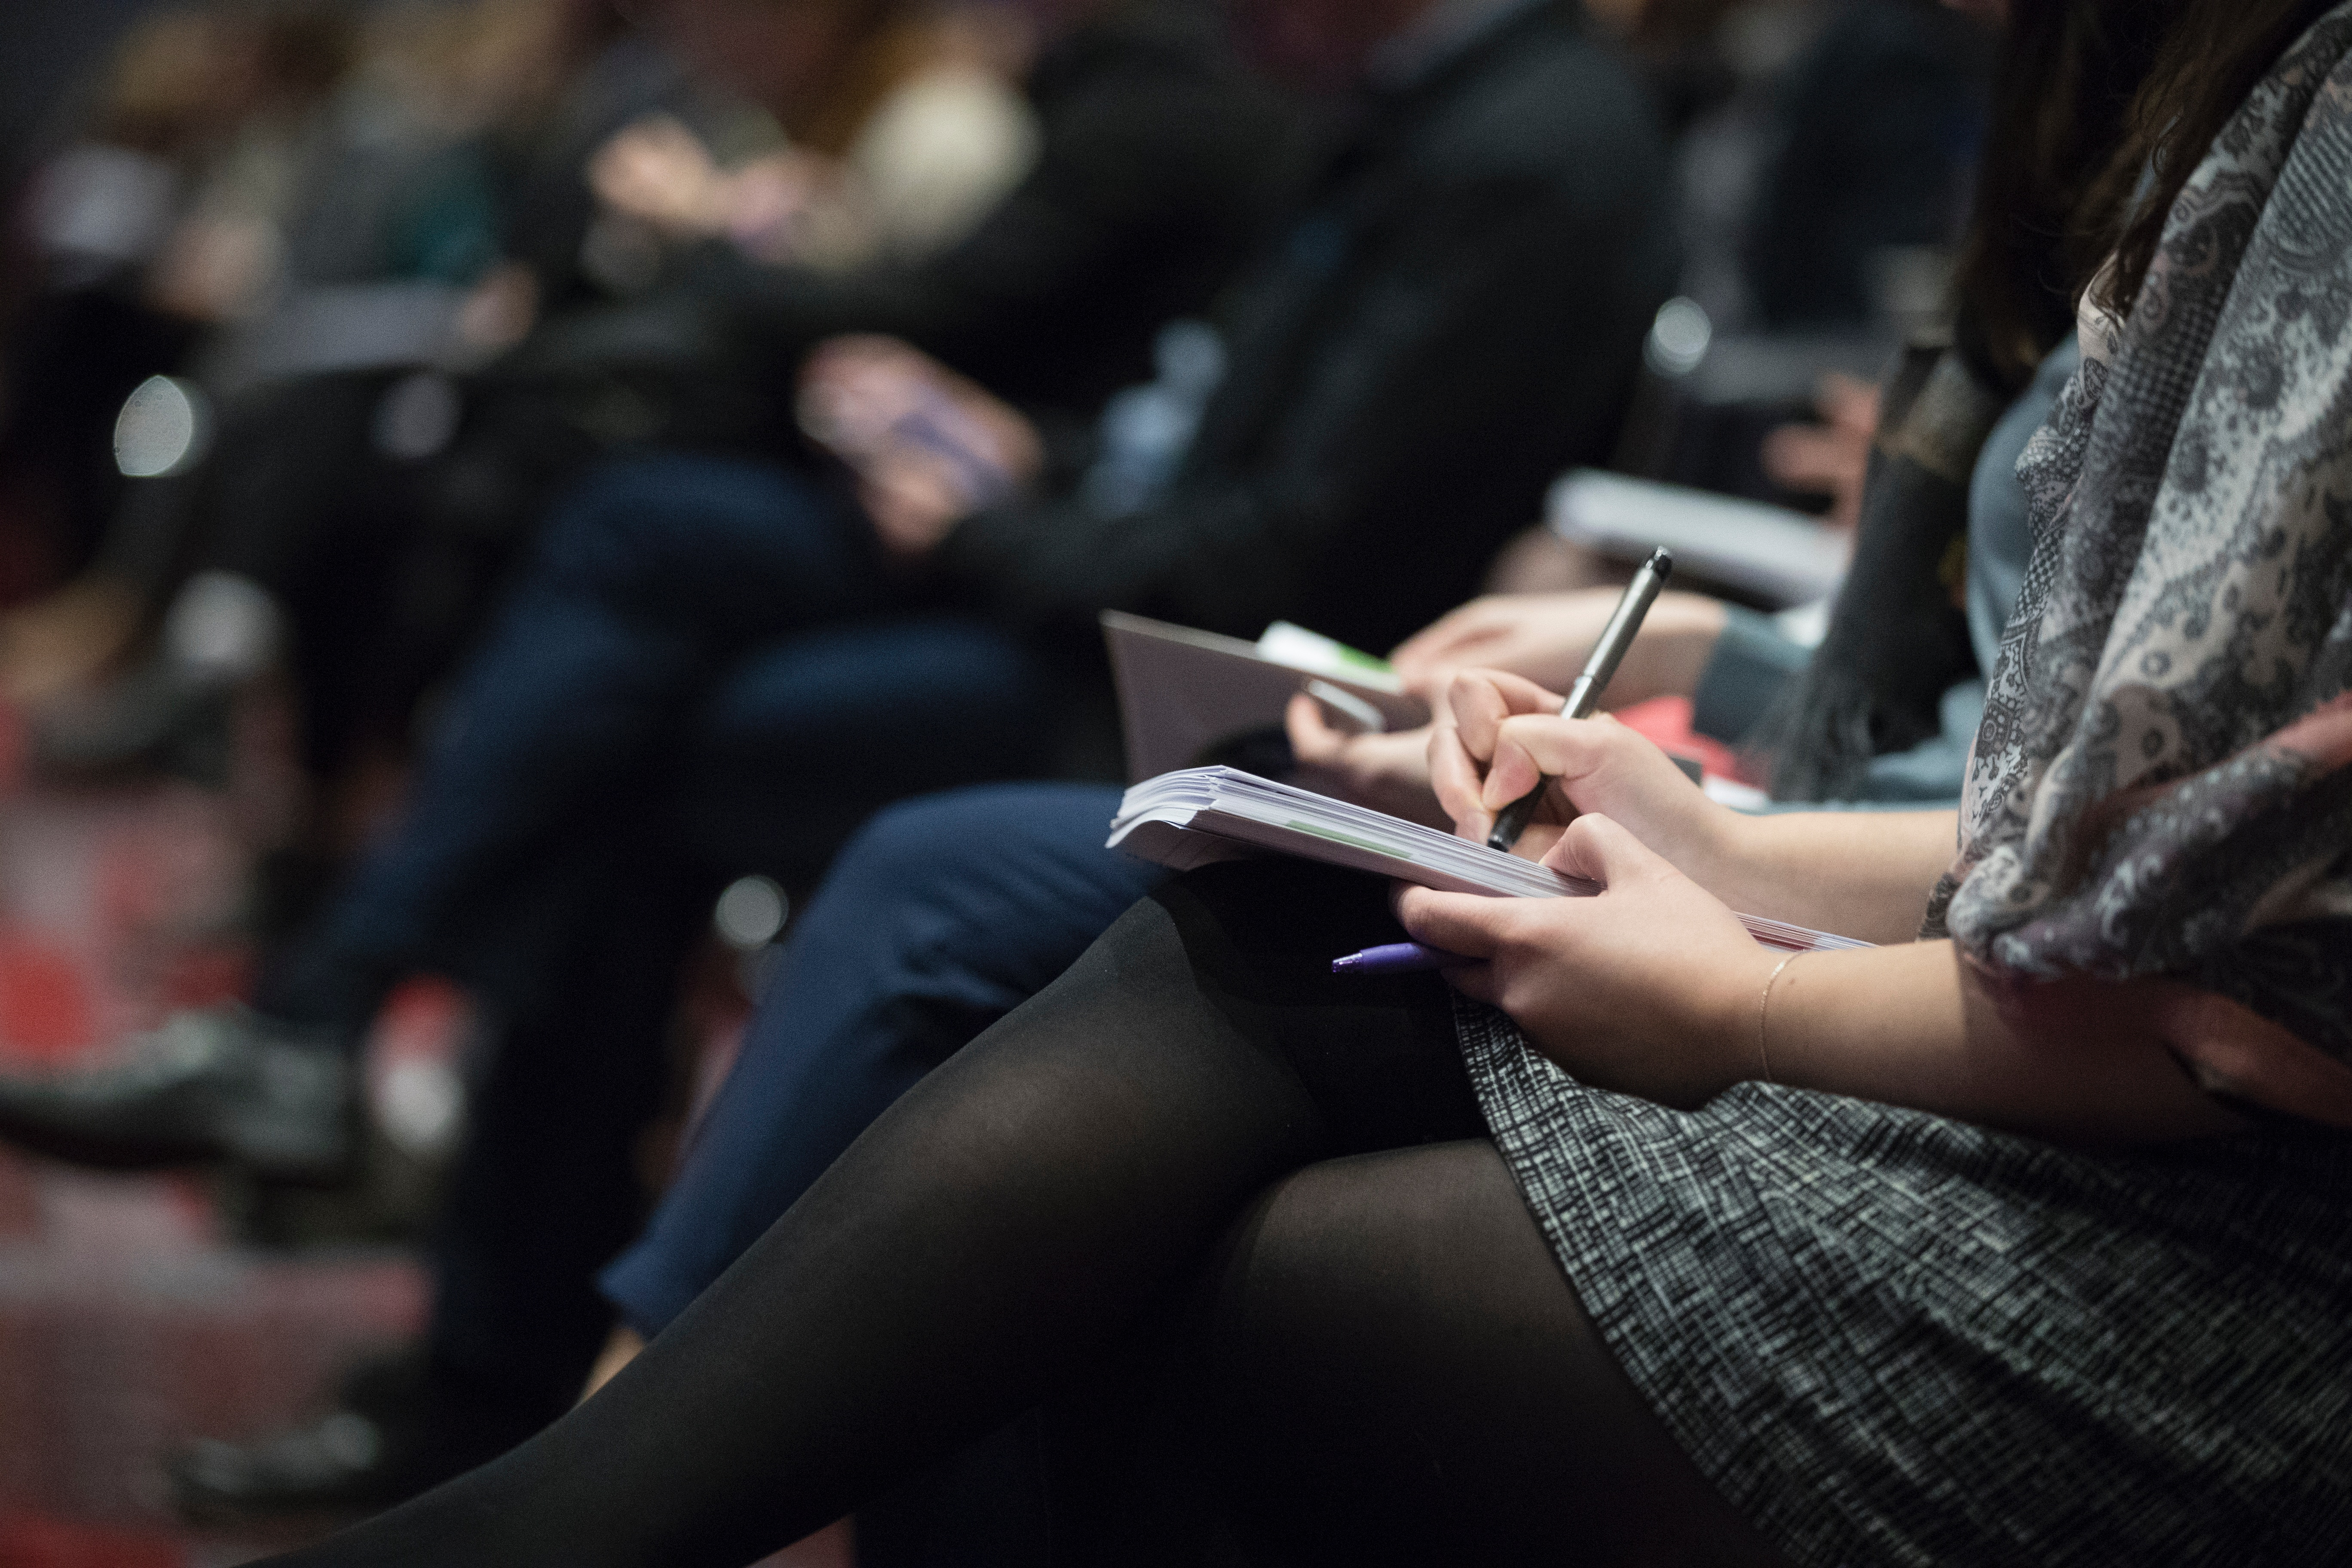 Attendees taking notes at the Shopify Unite event